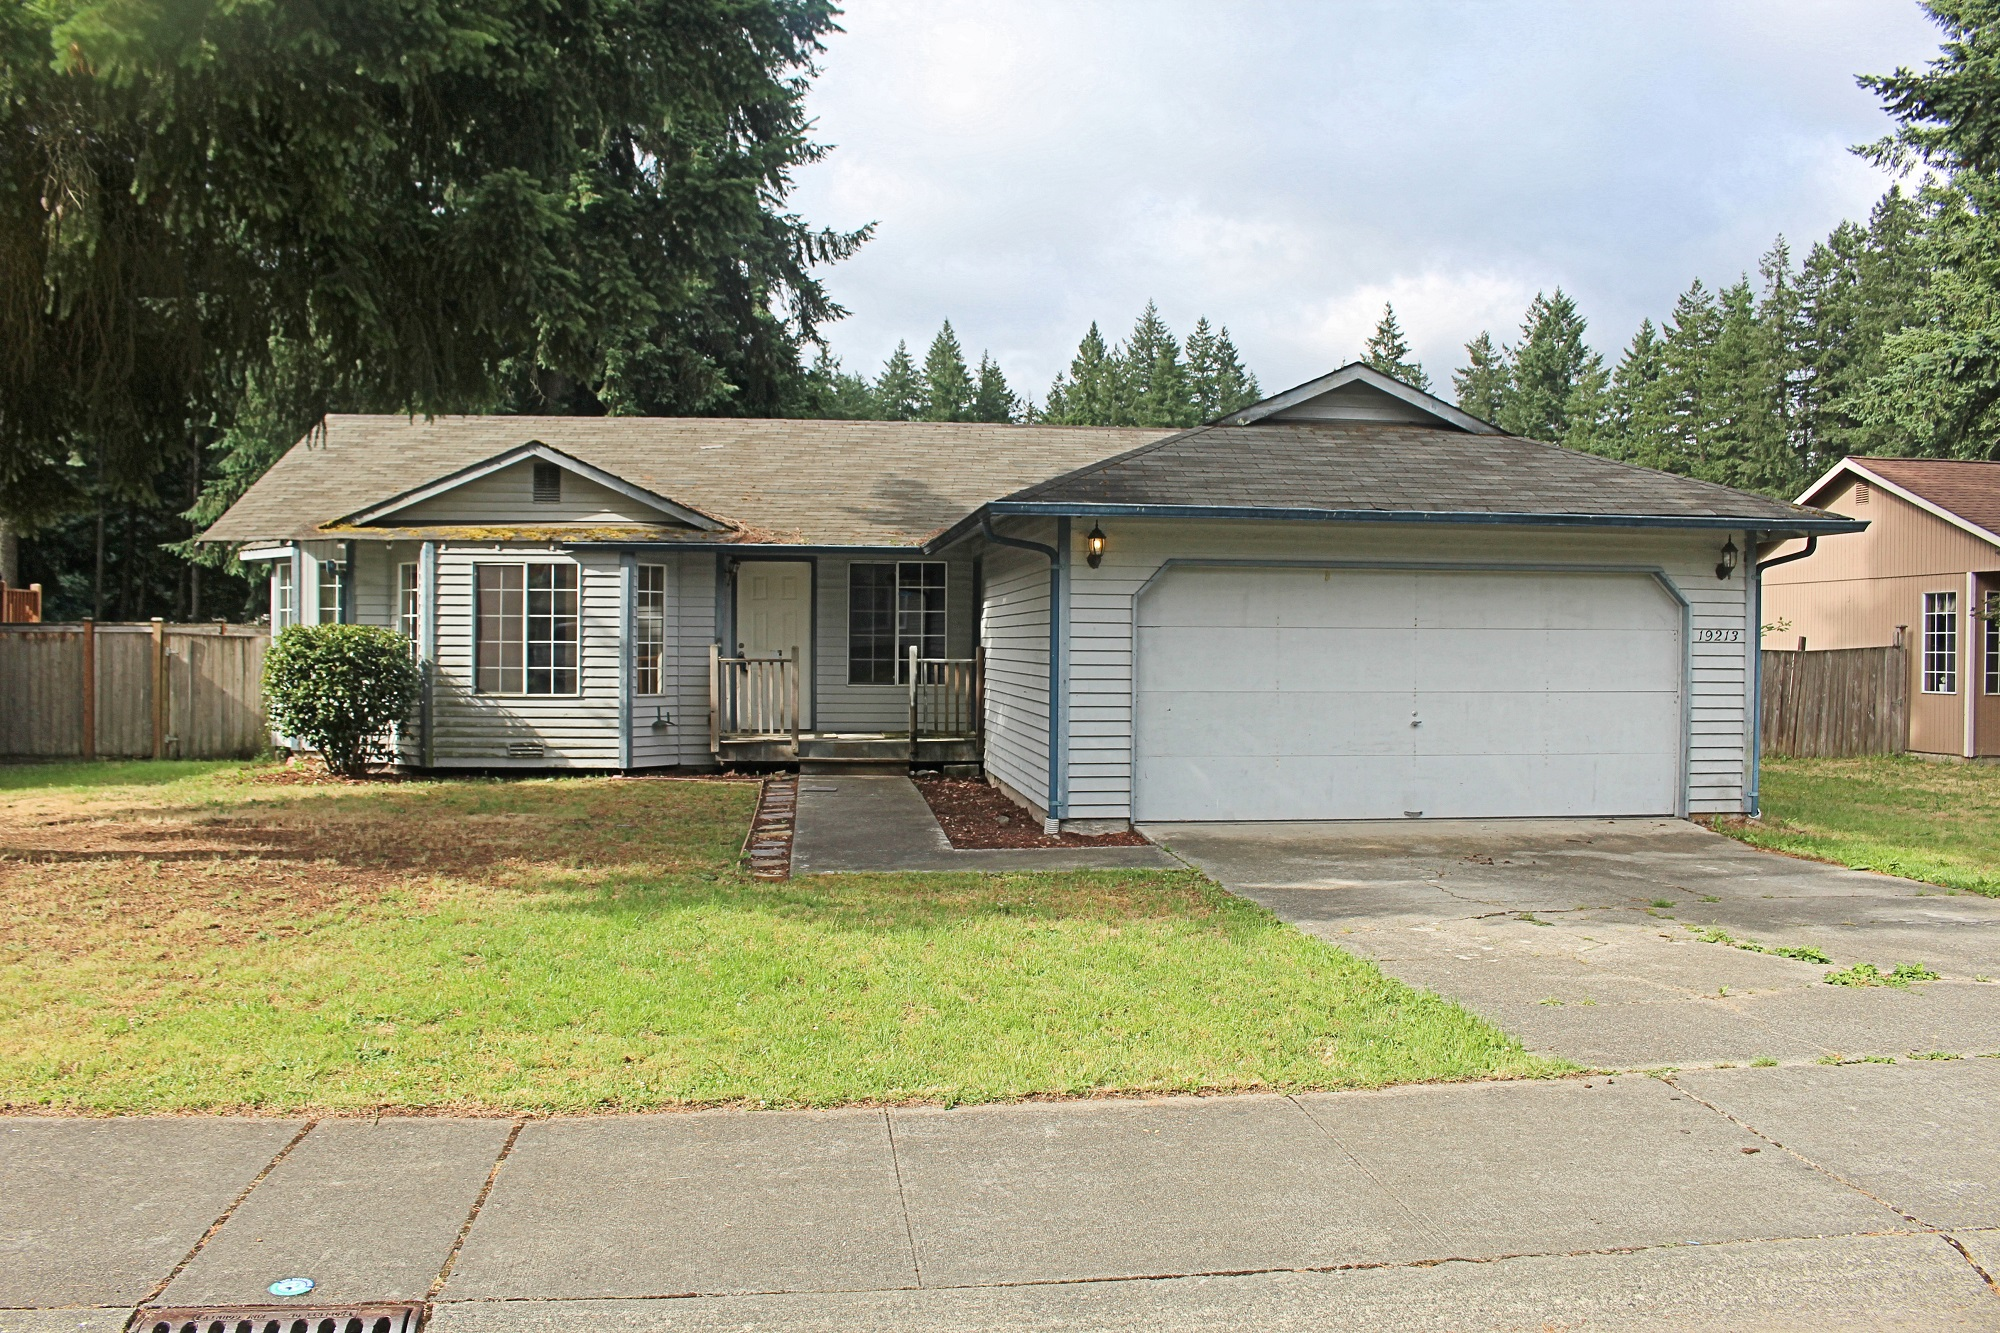 Front yard of Home for sale in Sumner WA